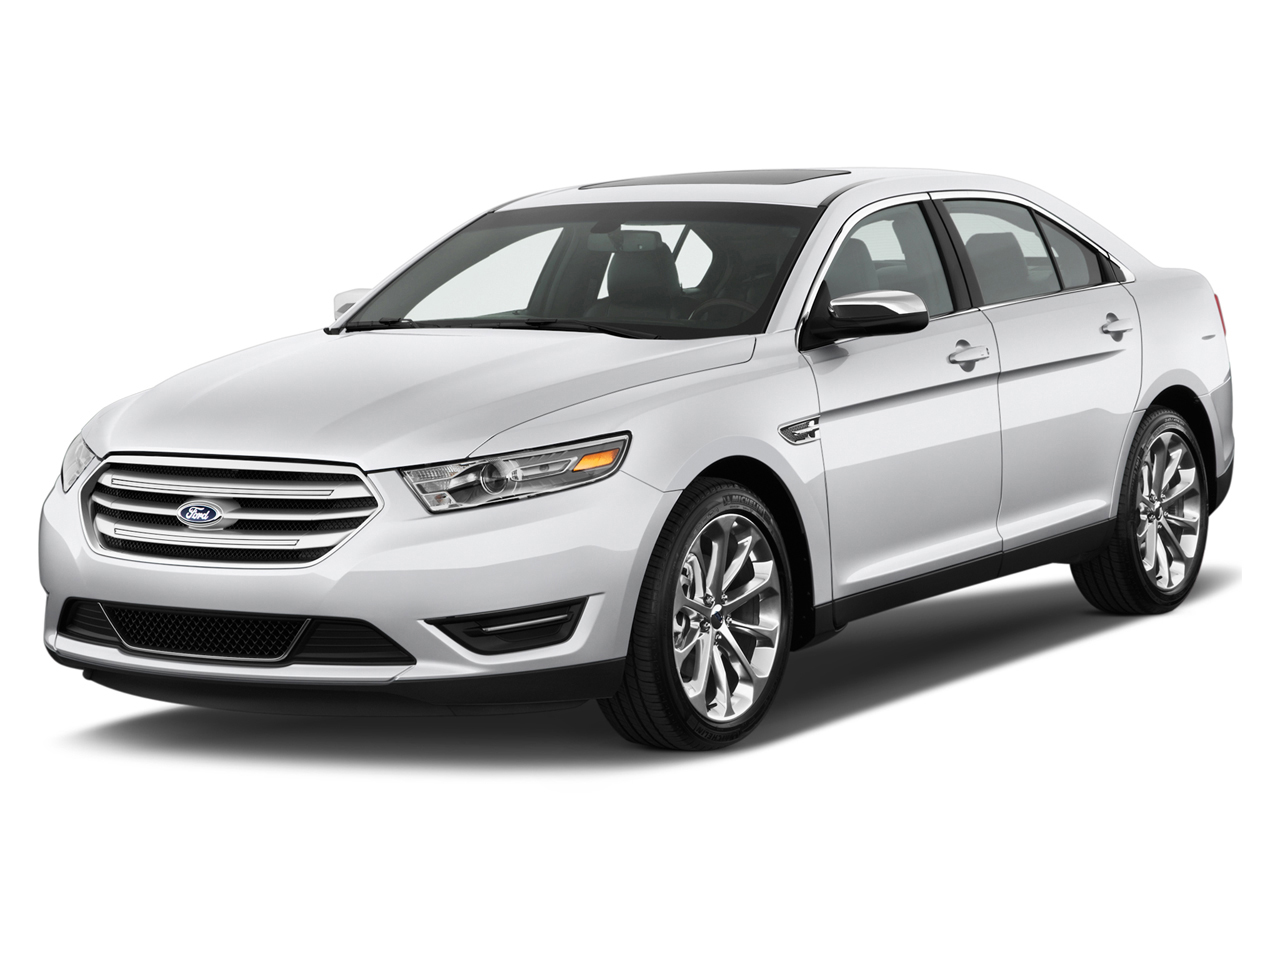 2015 ford taurus review ratings specs prices and photos the car connection. Black Bedroom Furniture Sets. Home Design Ideas